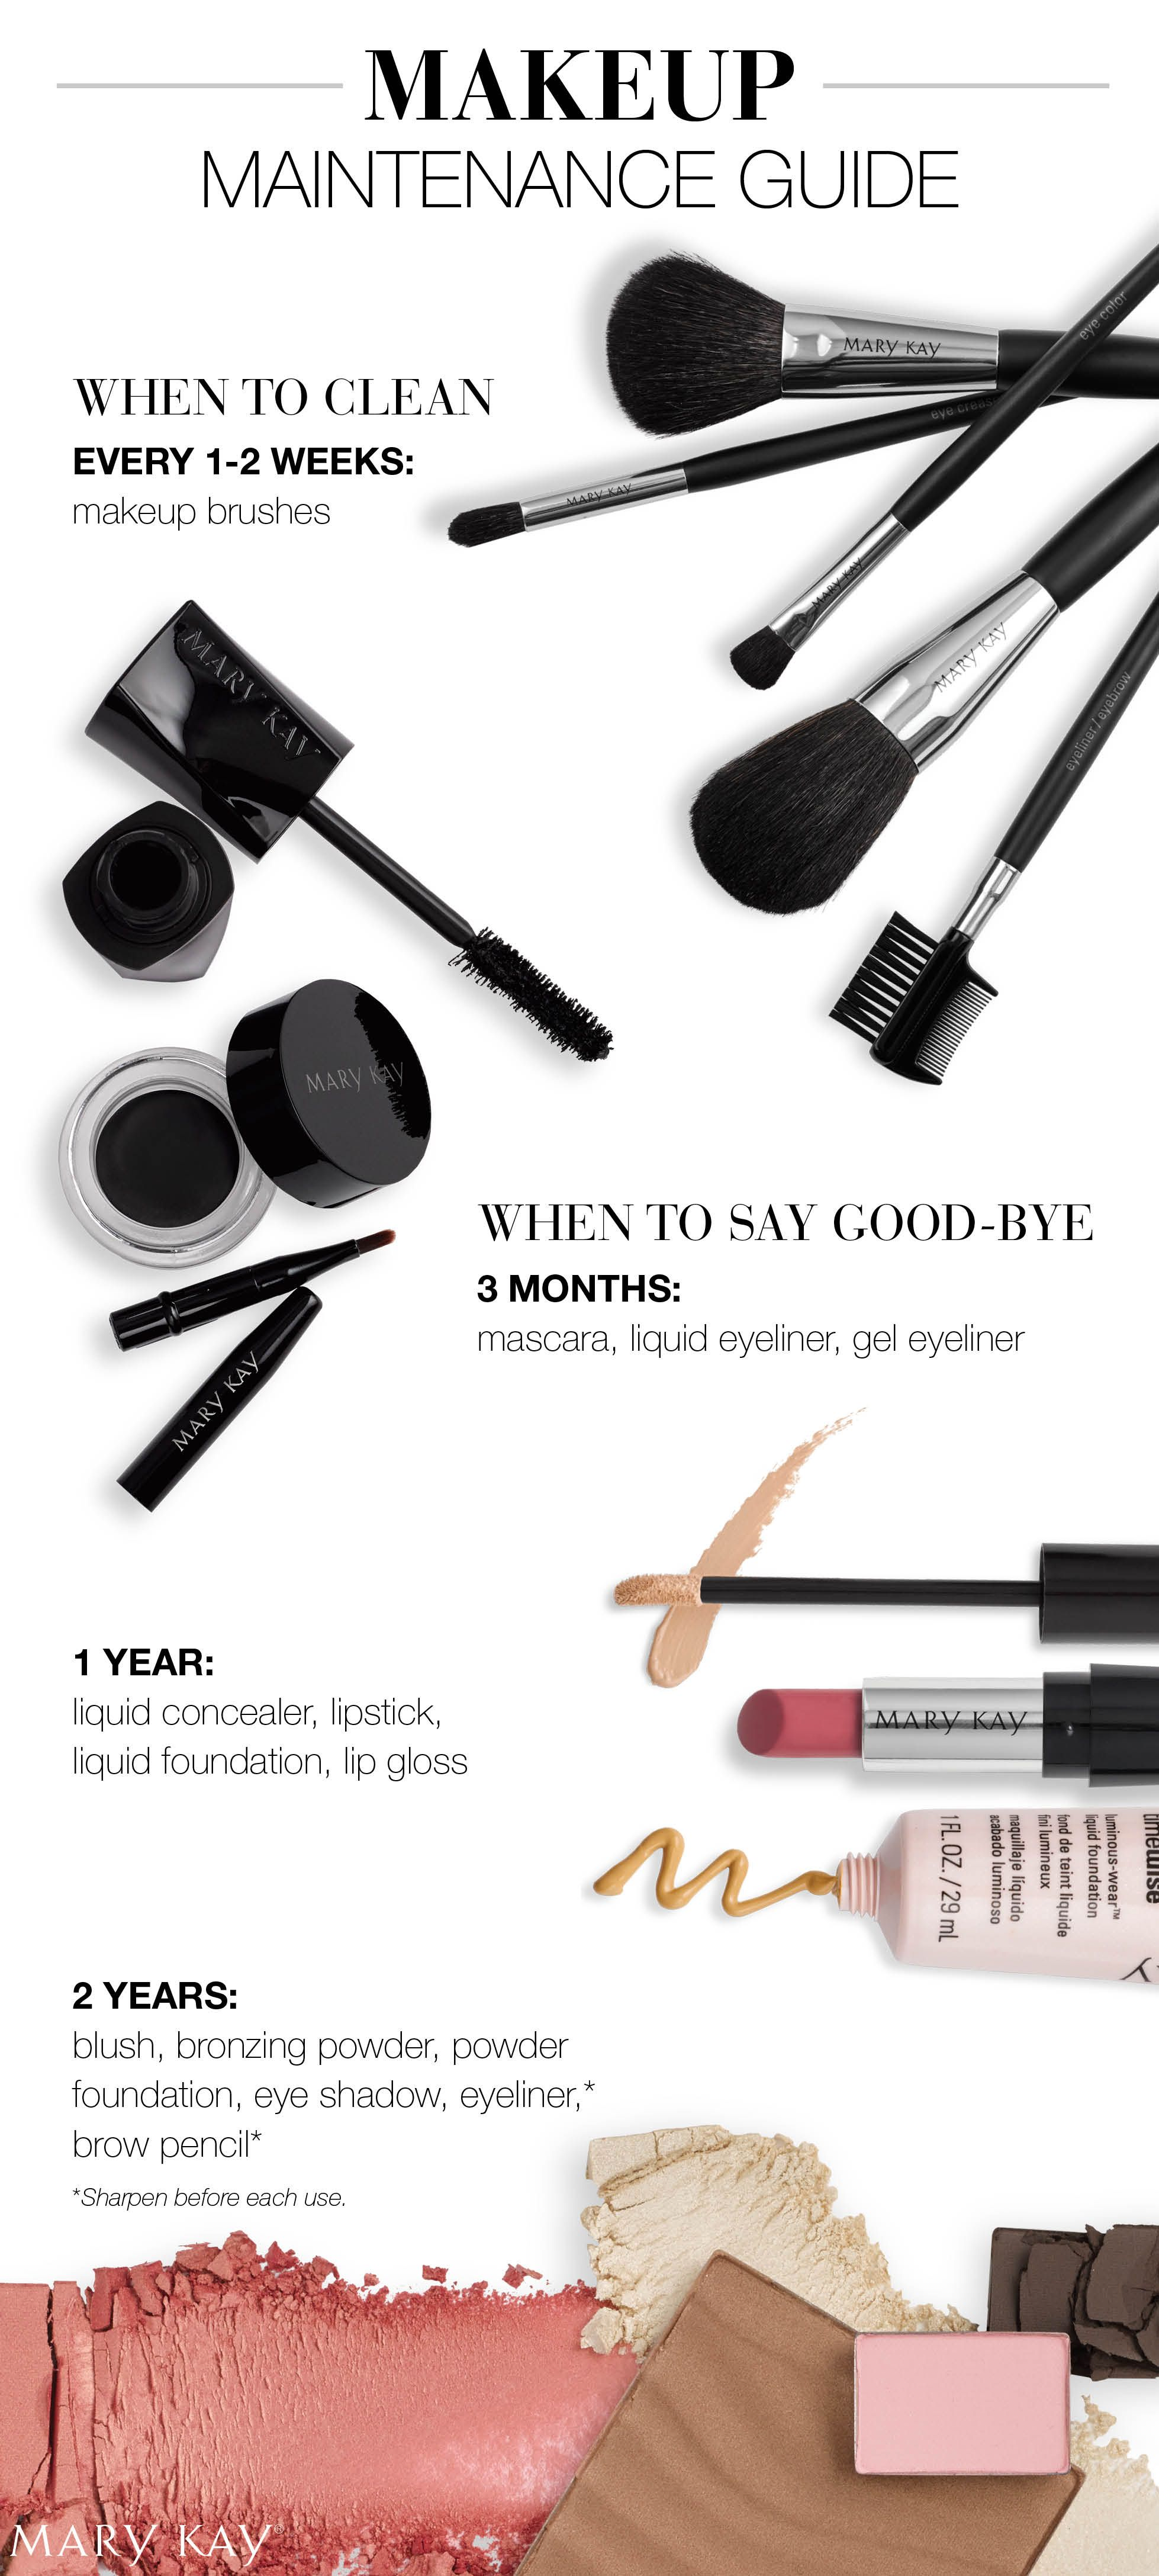 Did you know... Makeup bags need cleaning too! Follow these golden rules